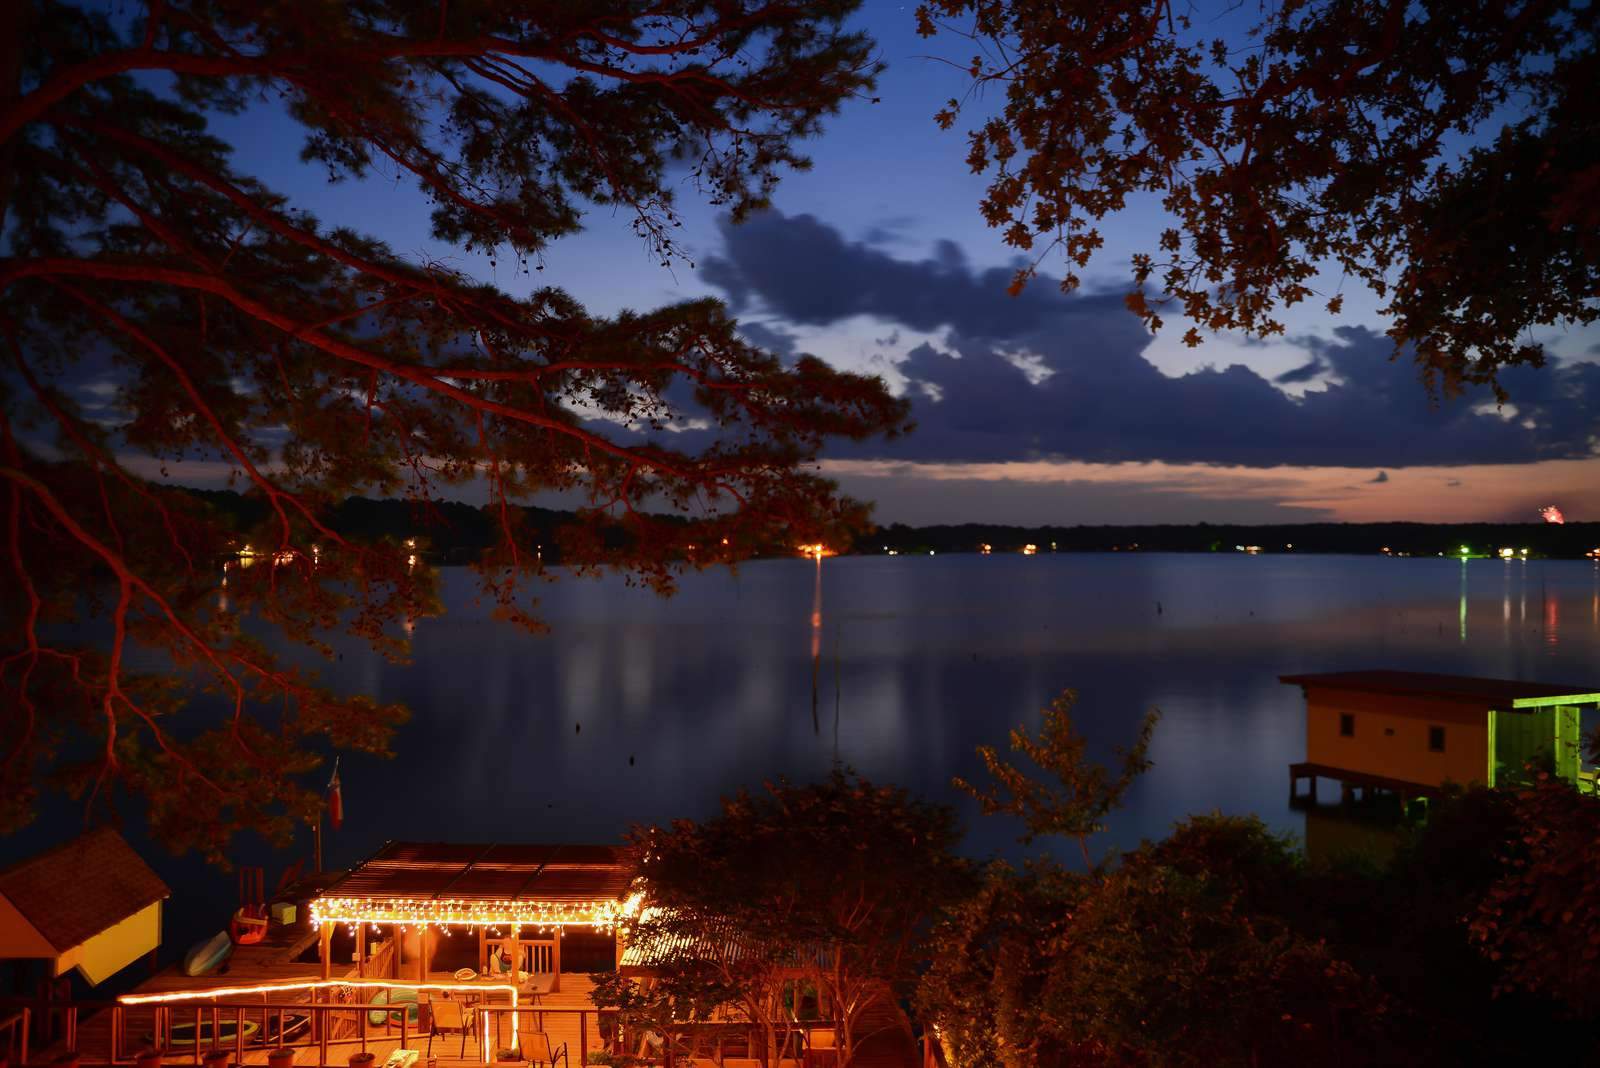 The view and quiet nights on the lake seem to be a favorite with our guests. Note the fireworks on the right side.